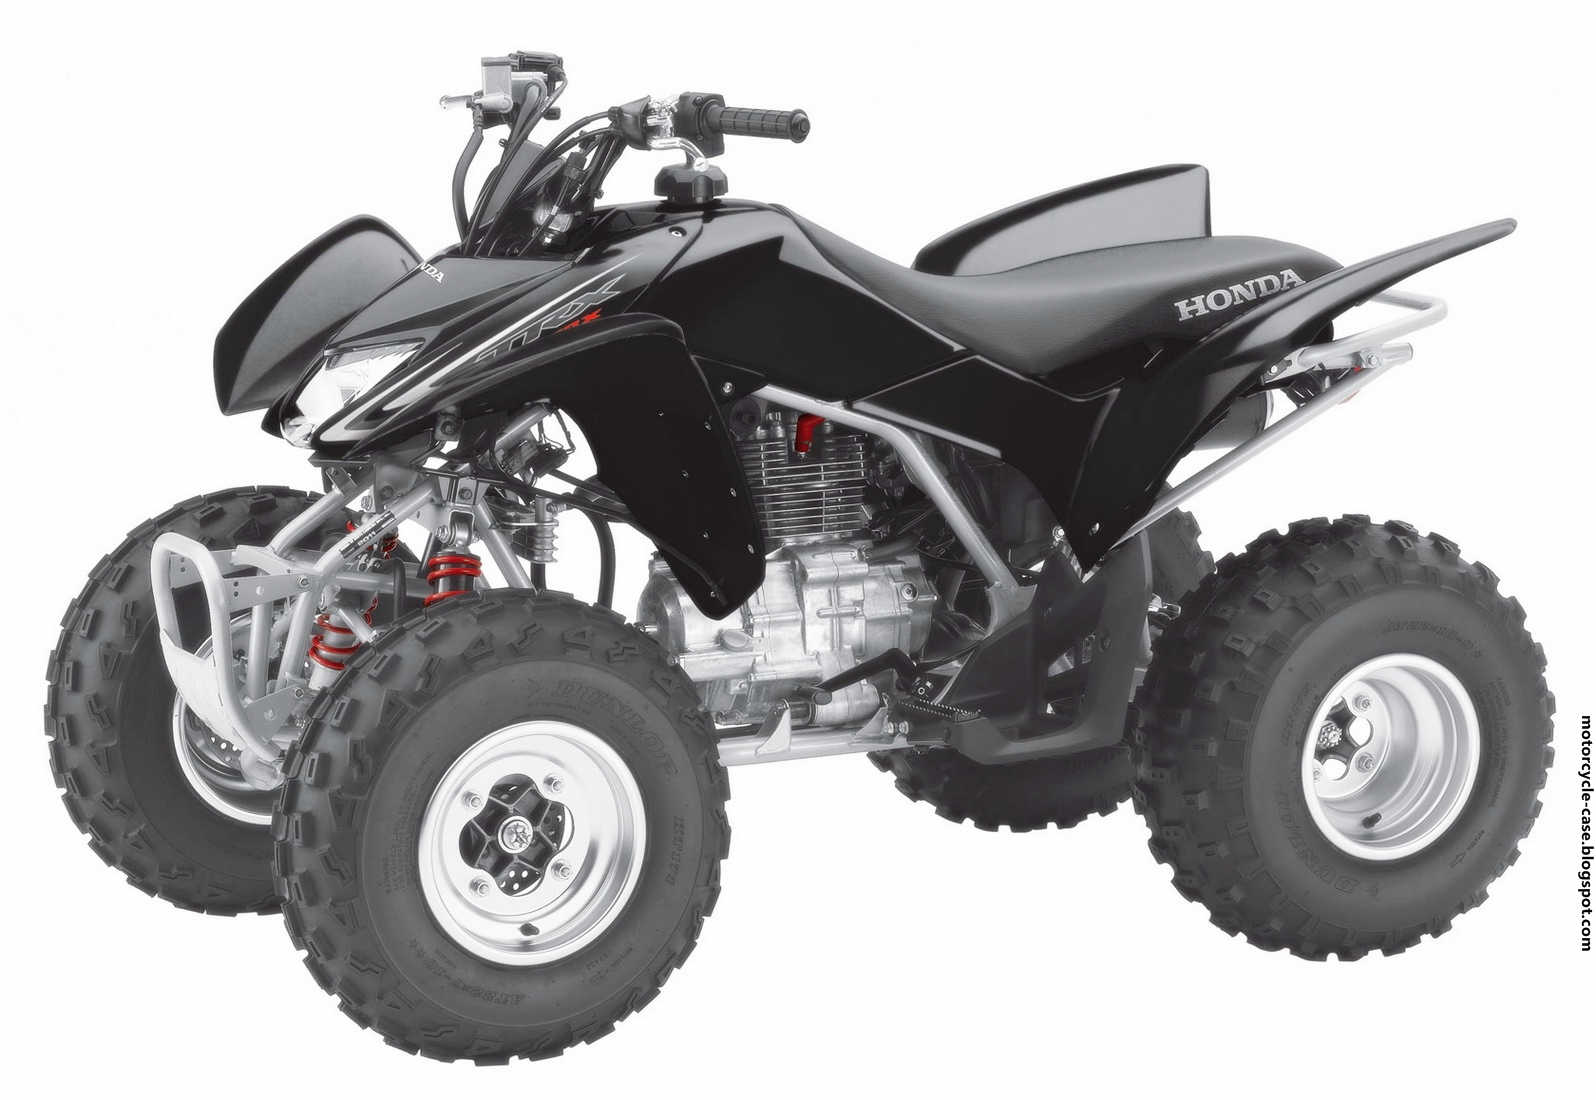 honda atv trx250x 2011 motorcycle case. Black Bedroom Furniture Sets. Home Design Ideas